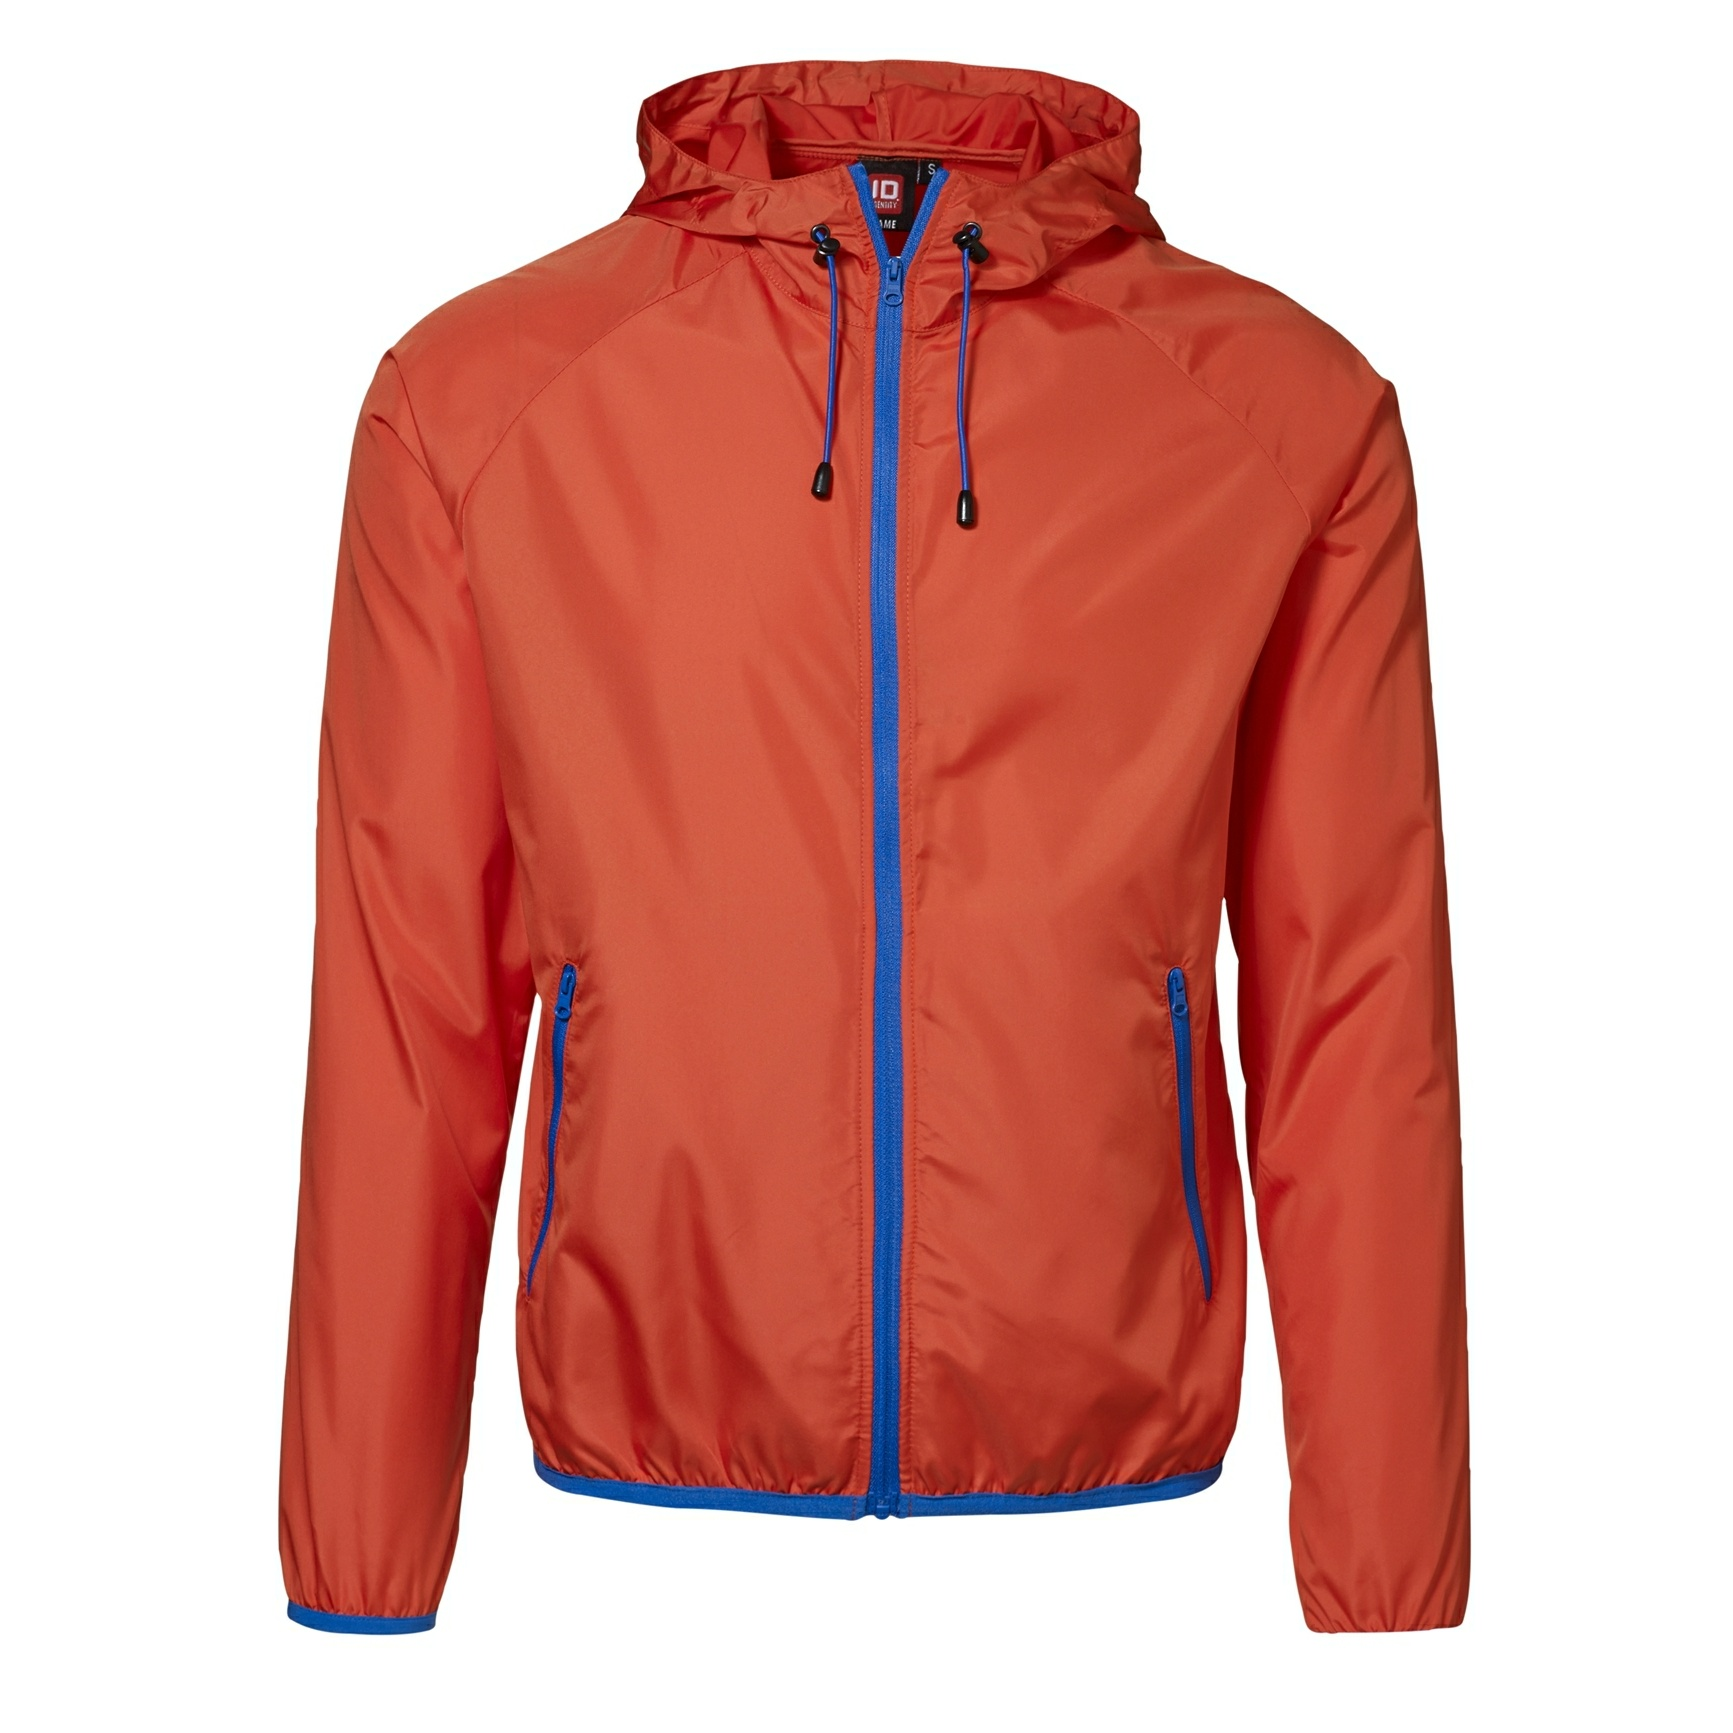 Shop eBay for great deals on Lightweight Windbreaker Coats & Jackets for Men. You'll find new or used products in Lightweight Windbreaker Coats & Jackets for Men .